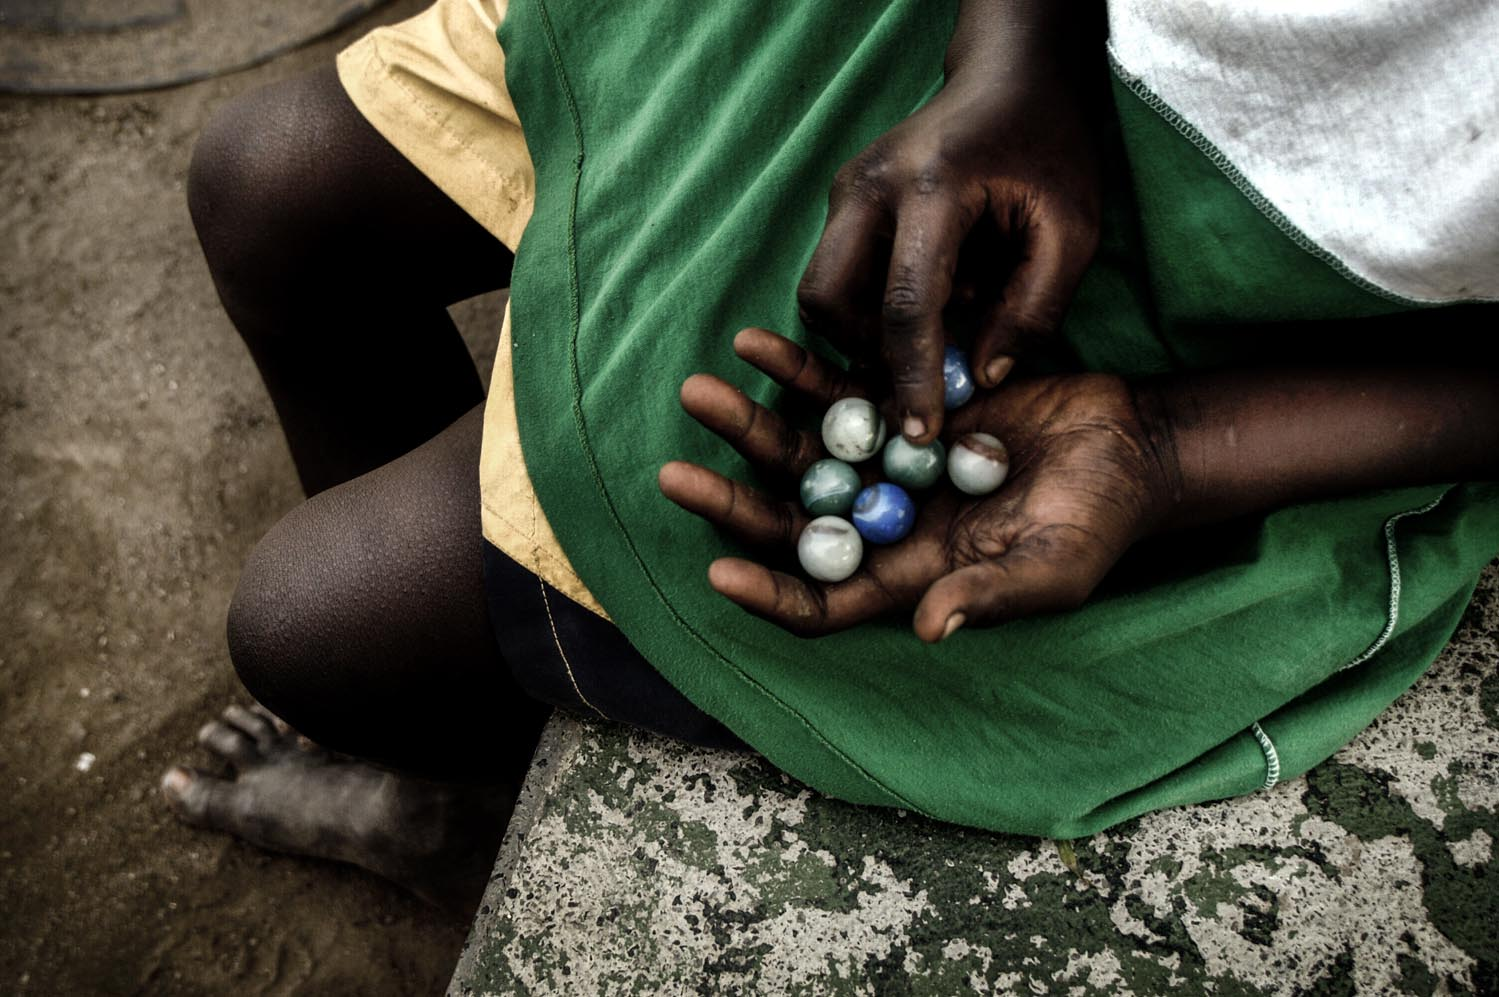 Boy holds marble balls at Flamengo's park in the City of Rio de Janeiro, Brazil.